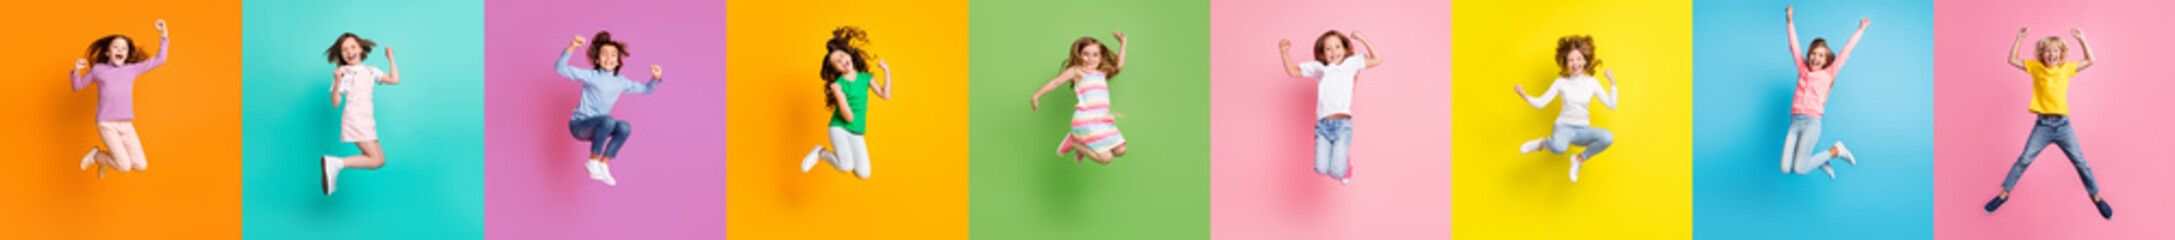 Obraz Collage photo of diversity racefriendly little kids boys girls jumping up win shopping discounts isolated over colored background - fototapety do salonu